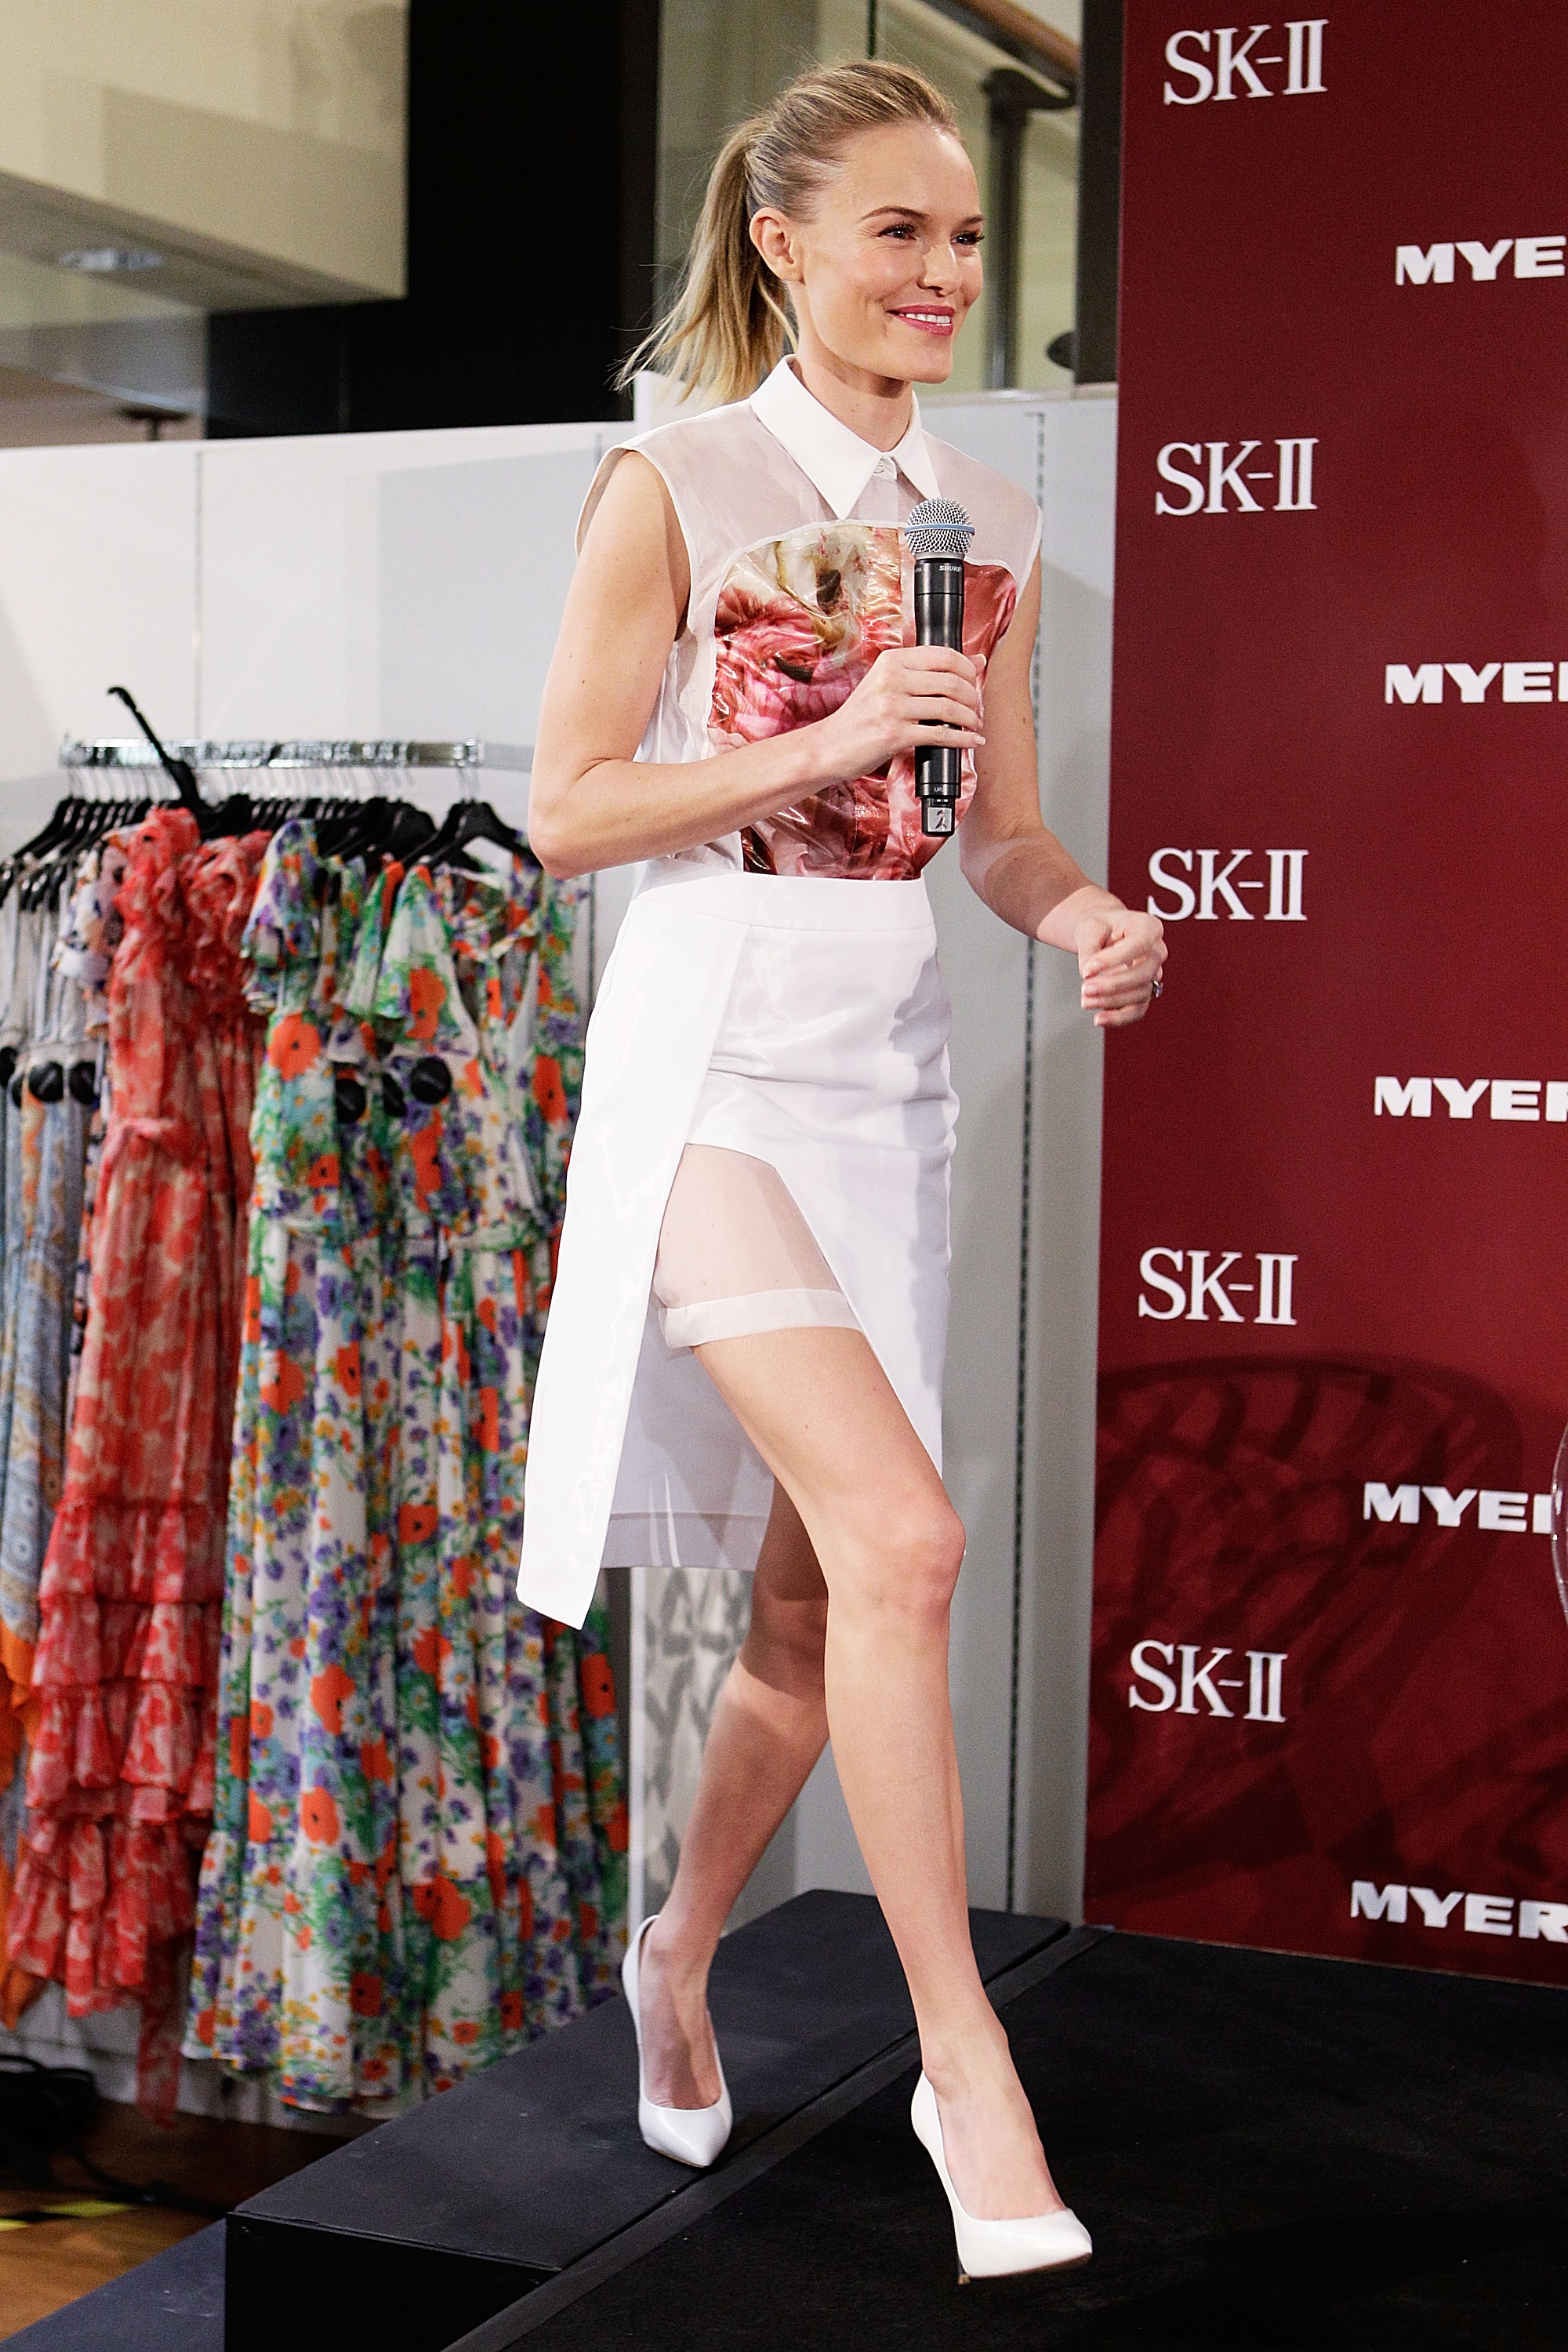 Kate Bosworth made an appearance at Myer Sydney City for her skin care line SK-II.